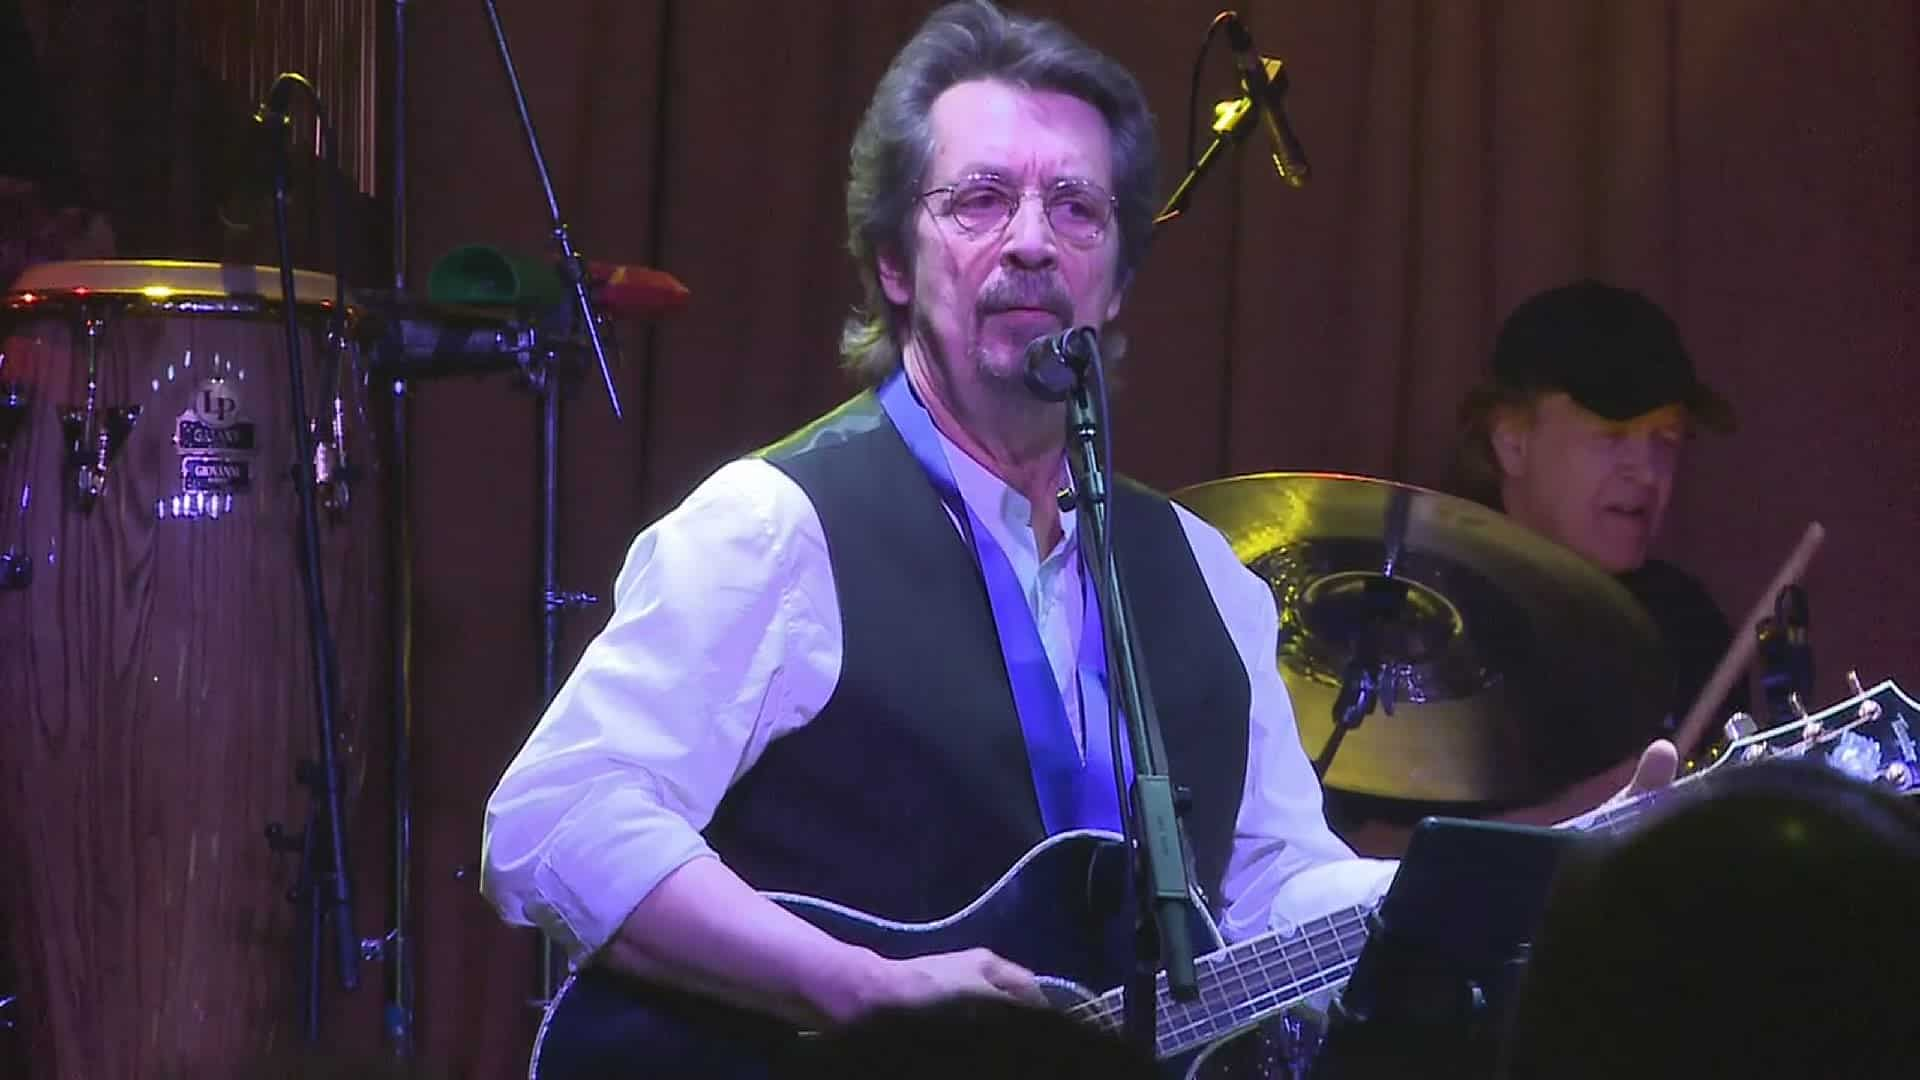 Singer And Songwriter Michael Stanley Dies At 72